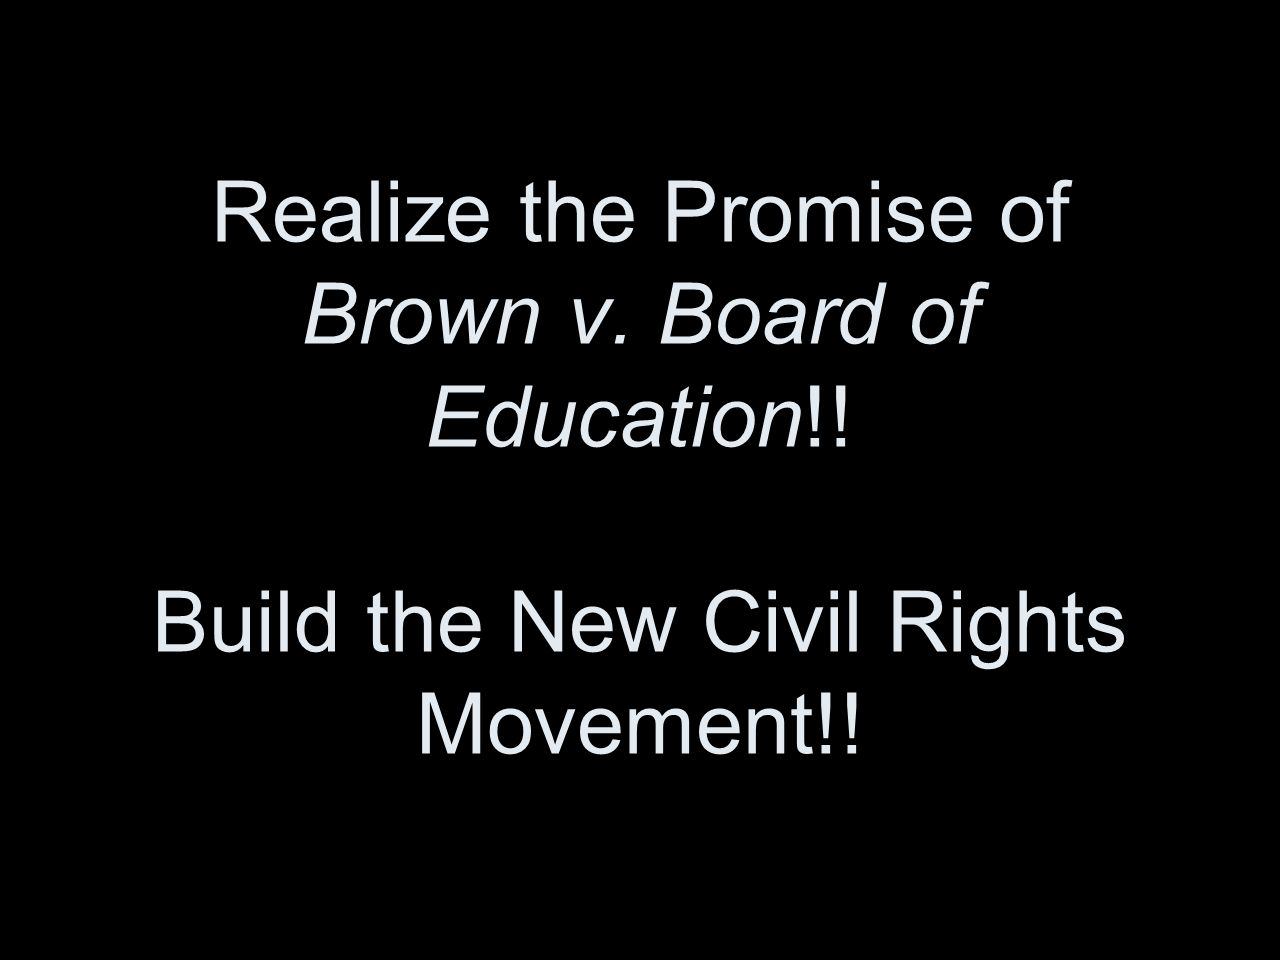 Realize the Promise of Brown v. Board of Education!! Build the New Civil Rights Movement!!